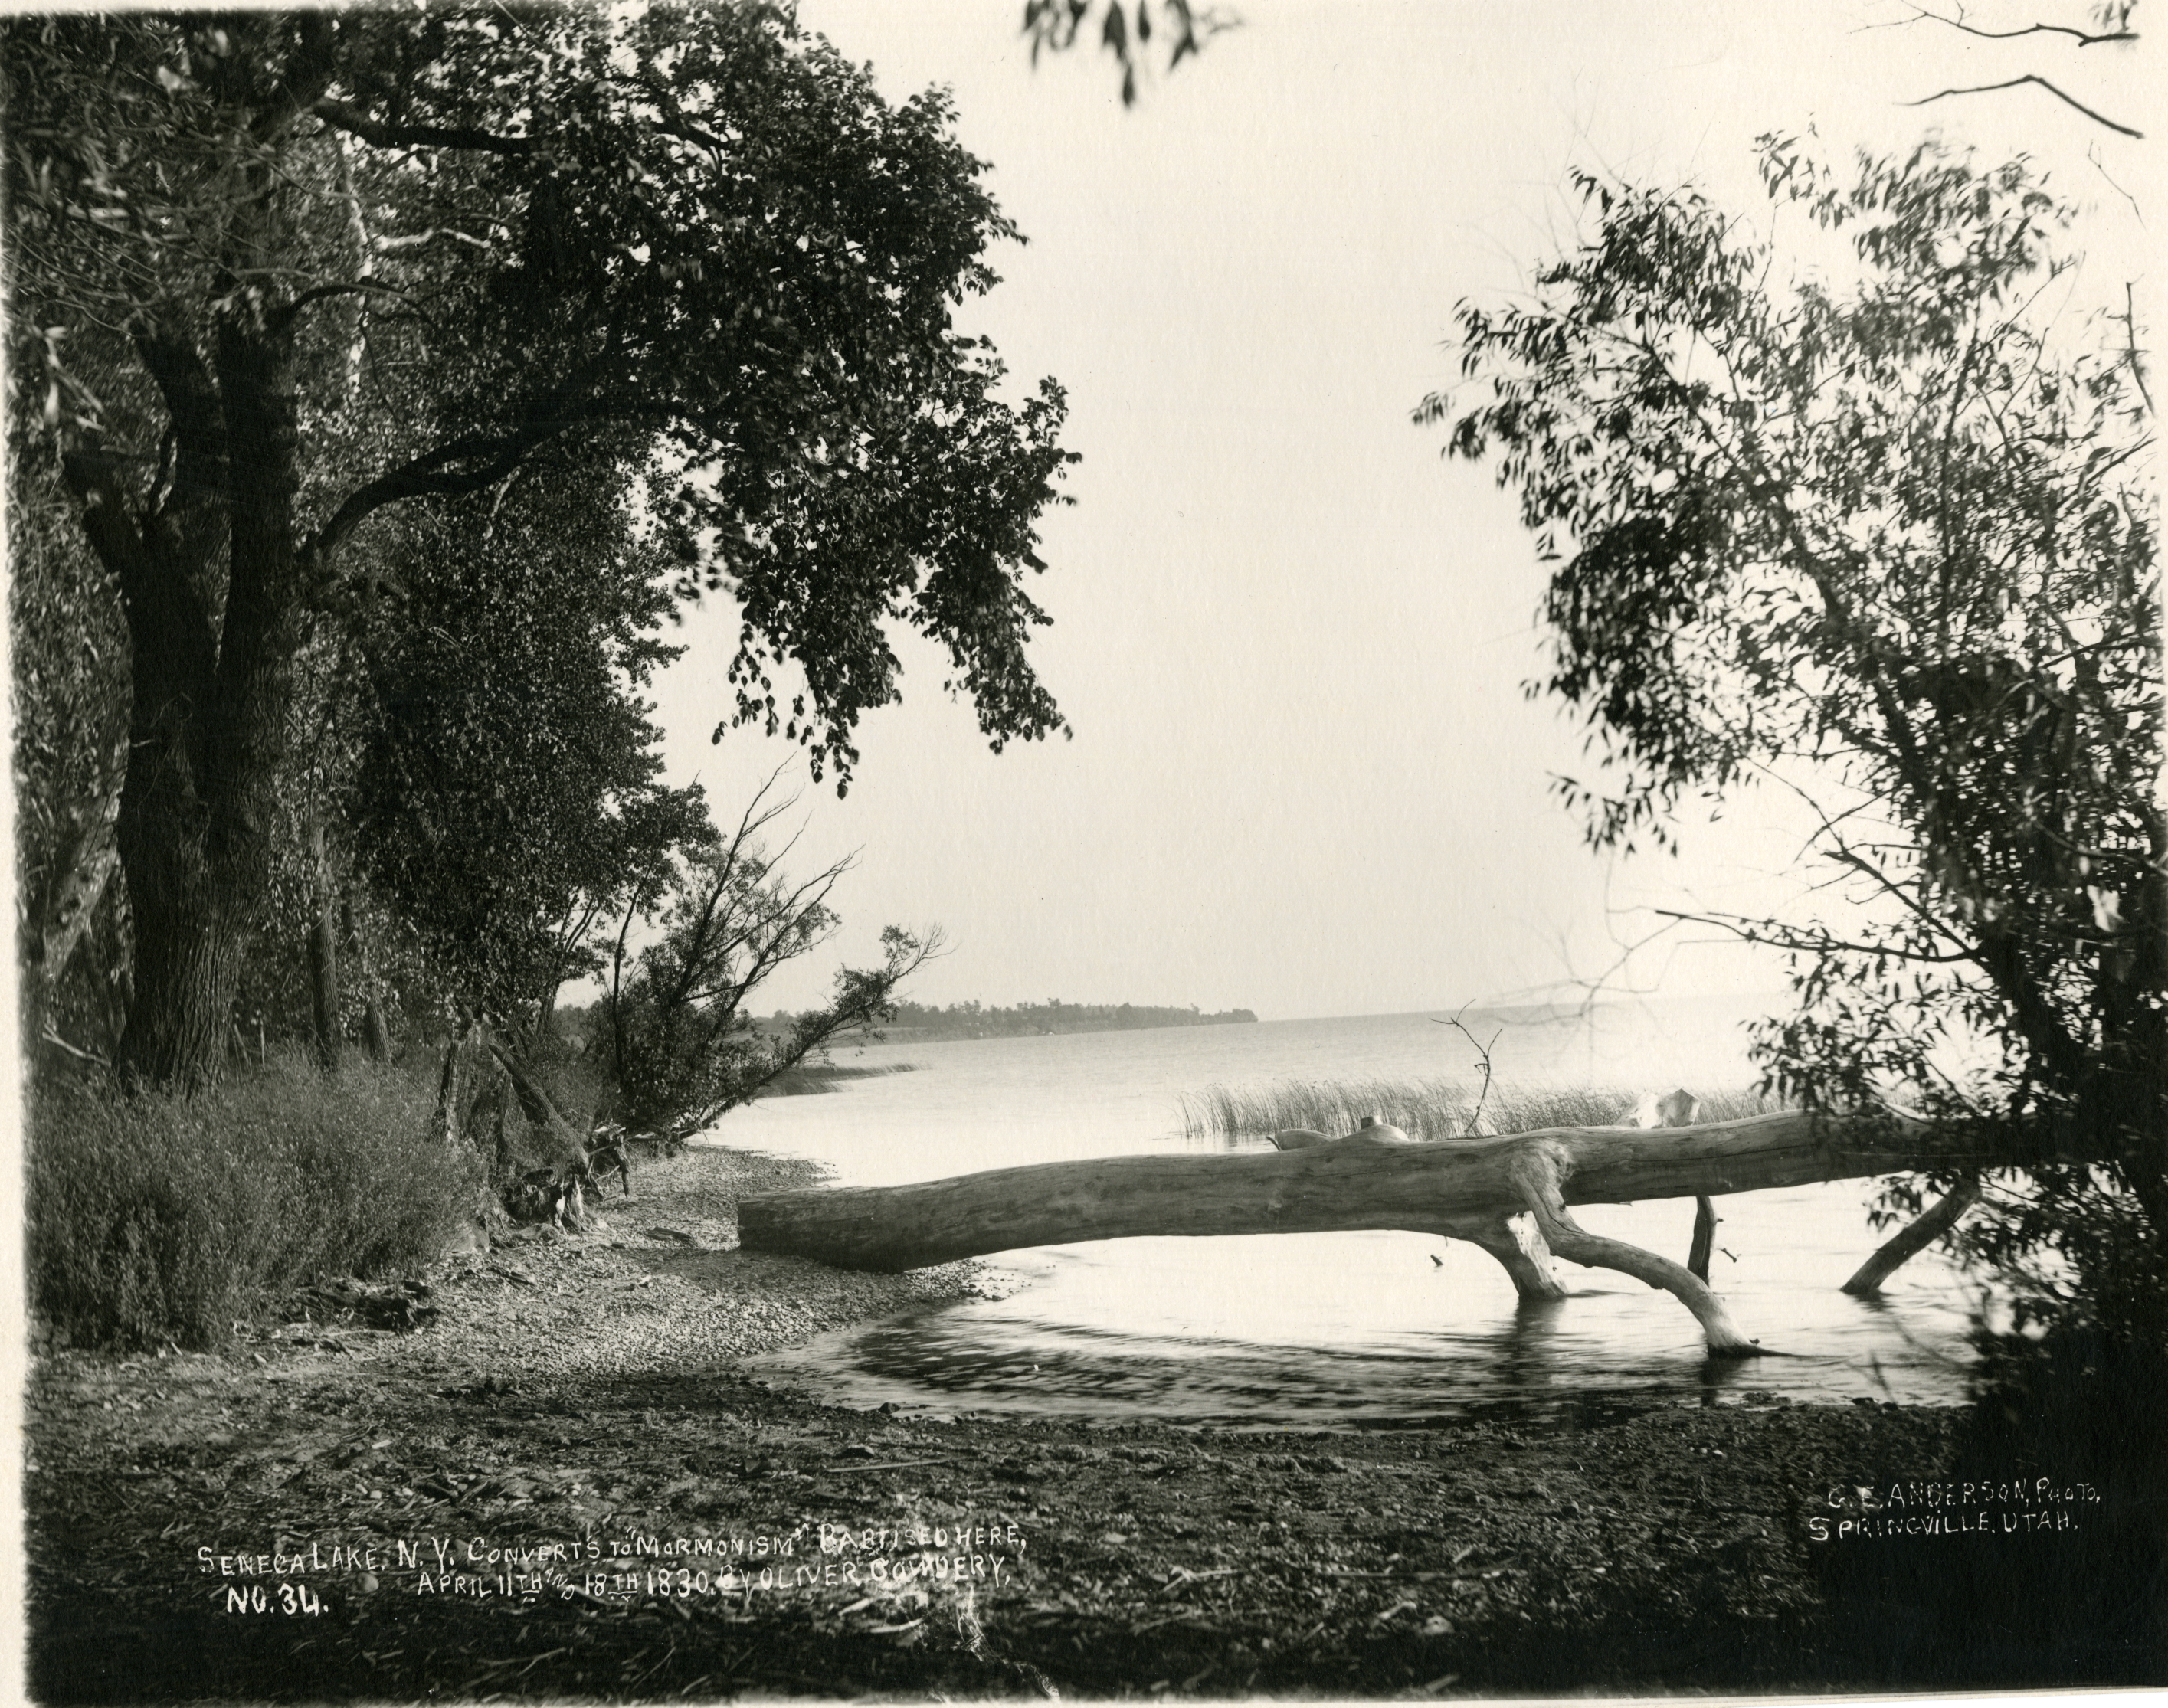 Seneca Lake. Photo by George E. Anderson, 1907